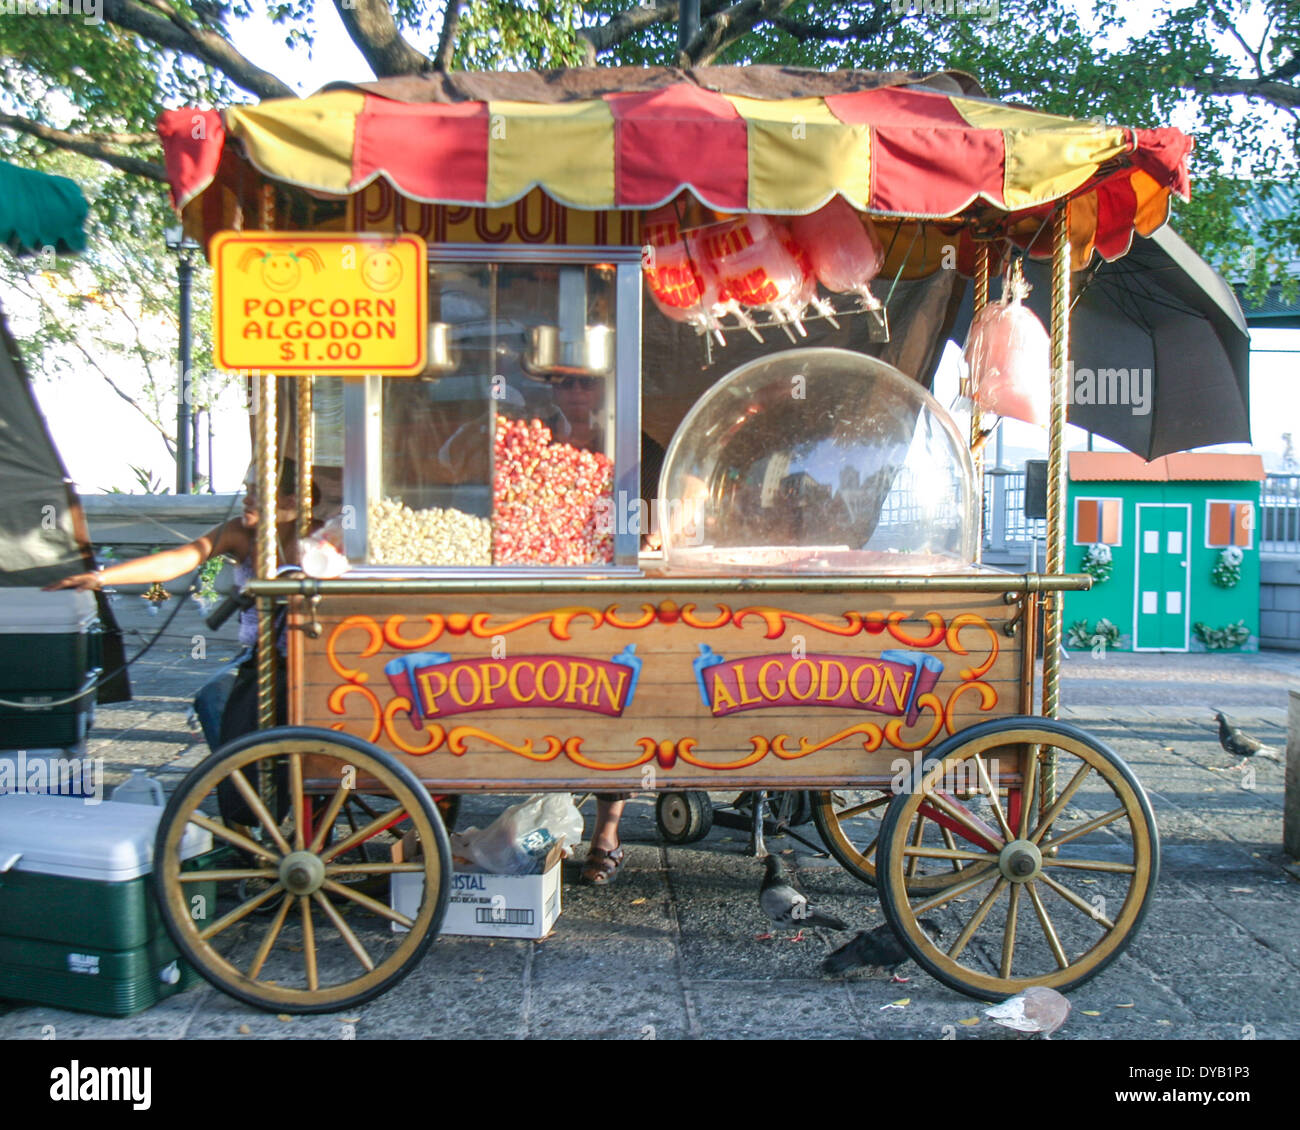 San Juan, Puerto Rico, US. 28th Mar, 2005. A colorfully decorated popcorn cart is located near the cruise ship docks Stock Photo